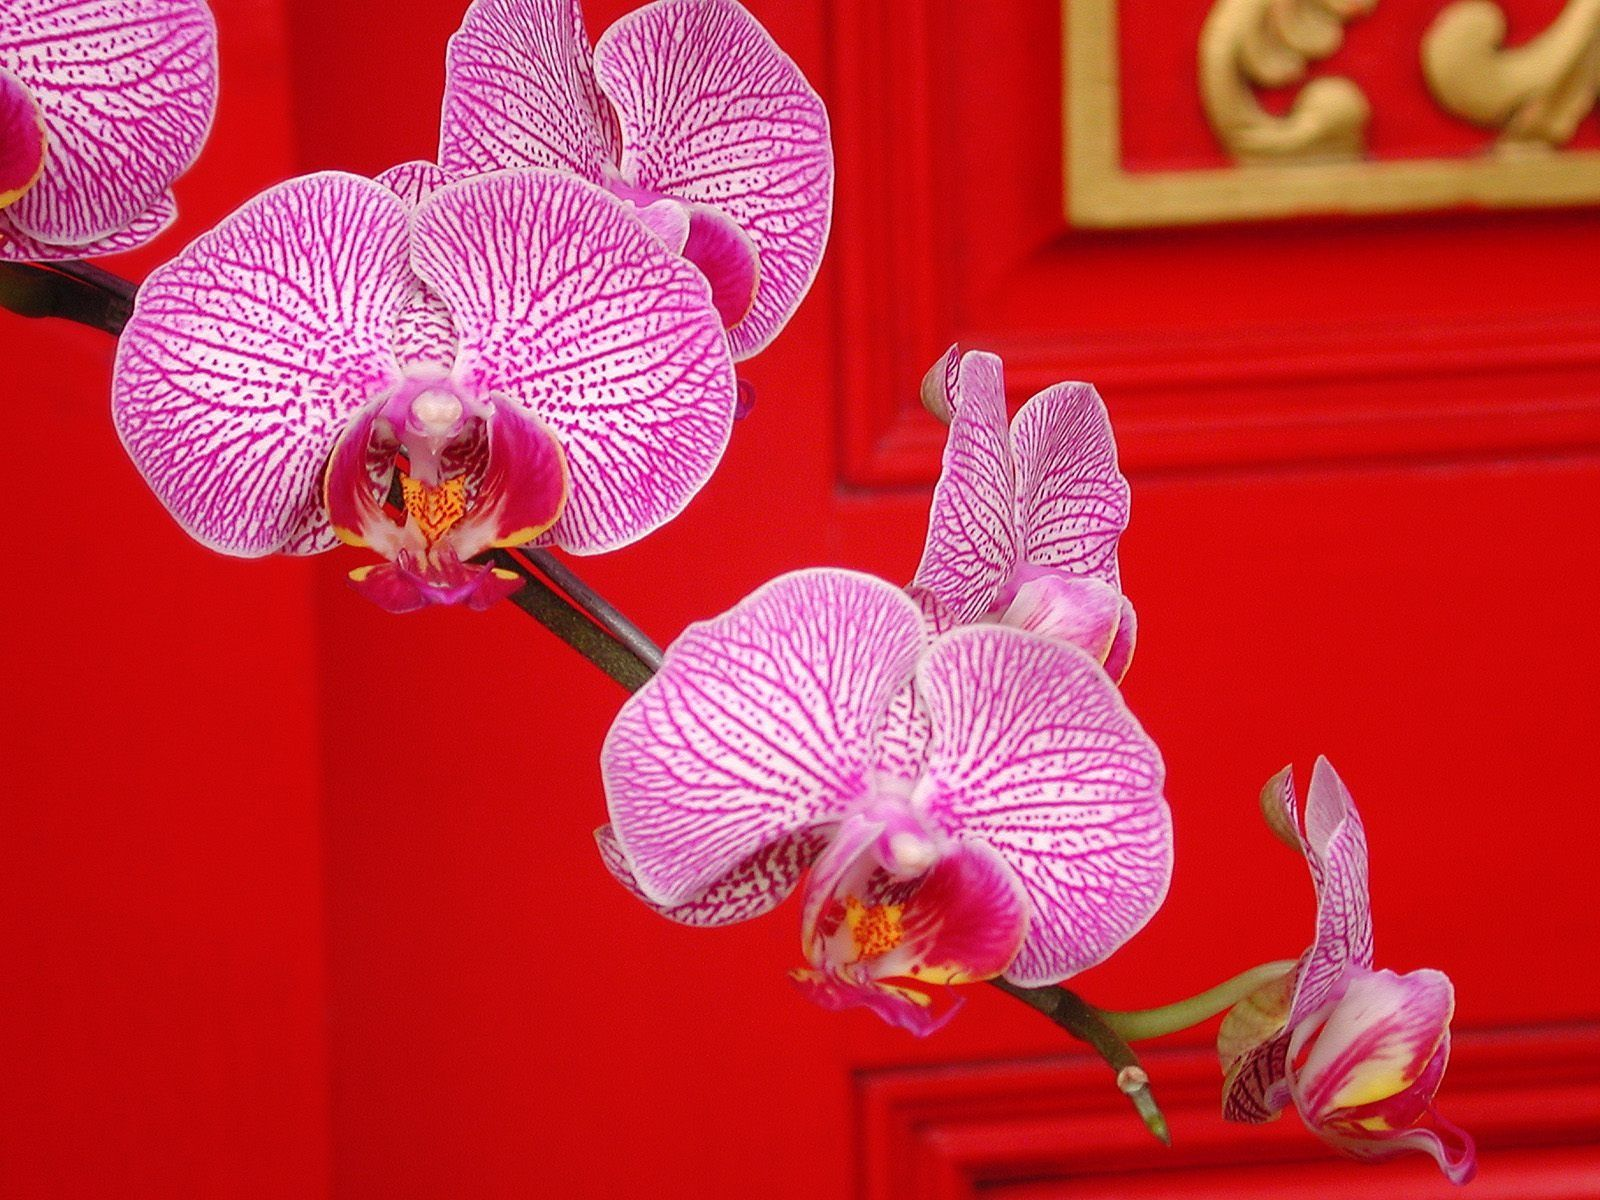 Orchid american orchid society phalaenopsis flowers beautiful r